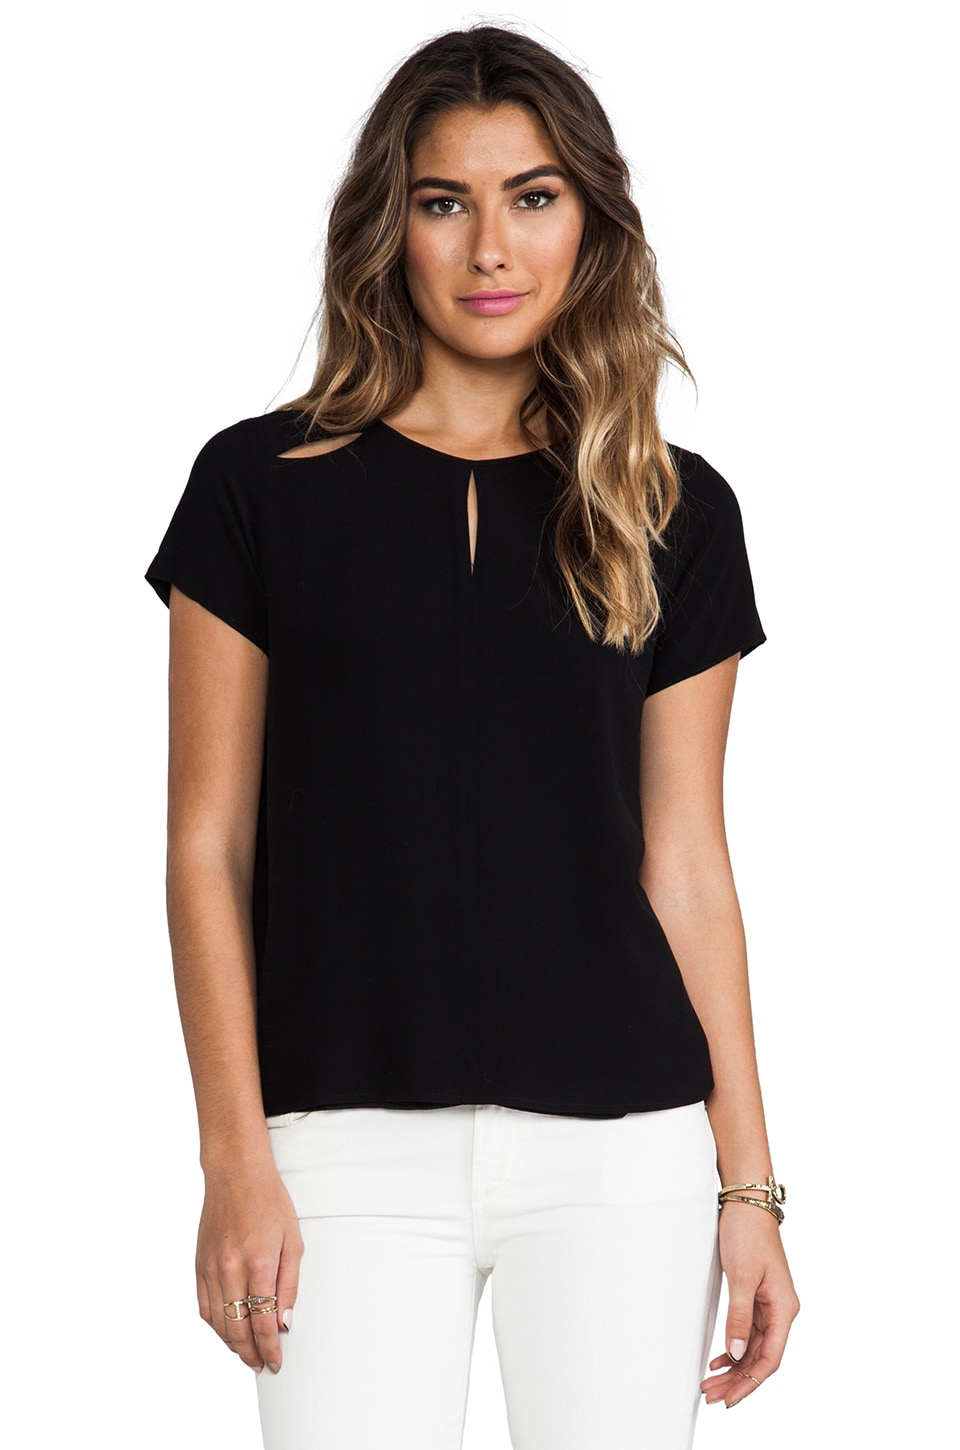 Funktional Linear Peek Through Top in Black